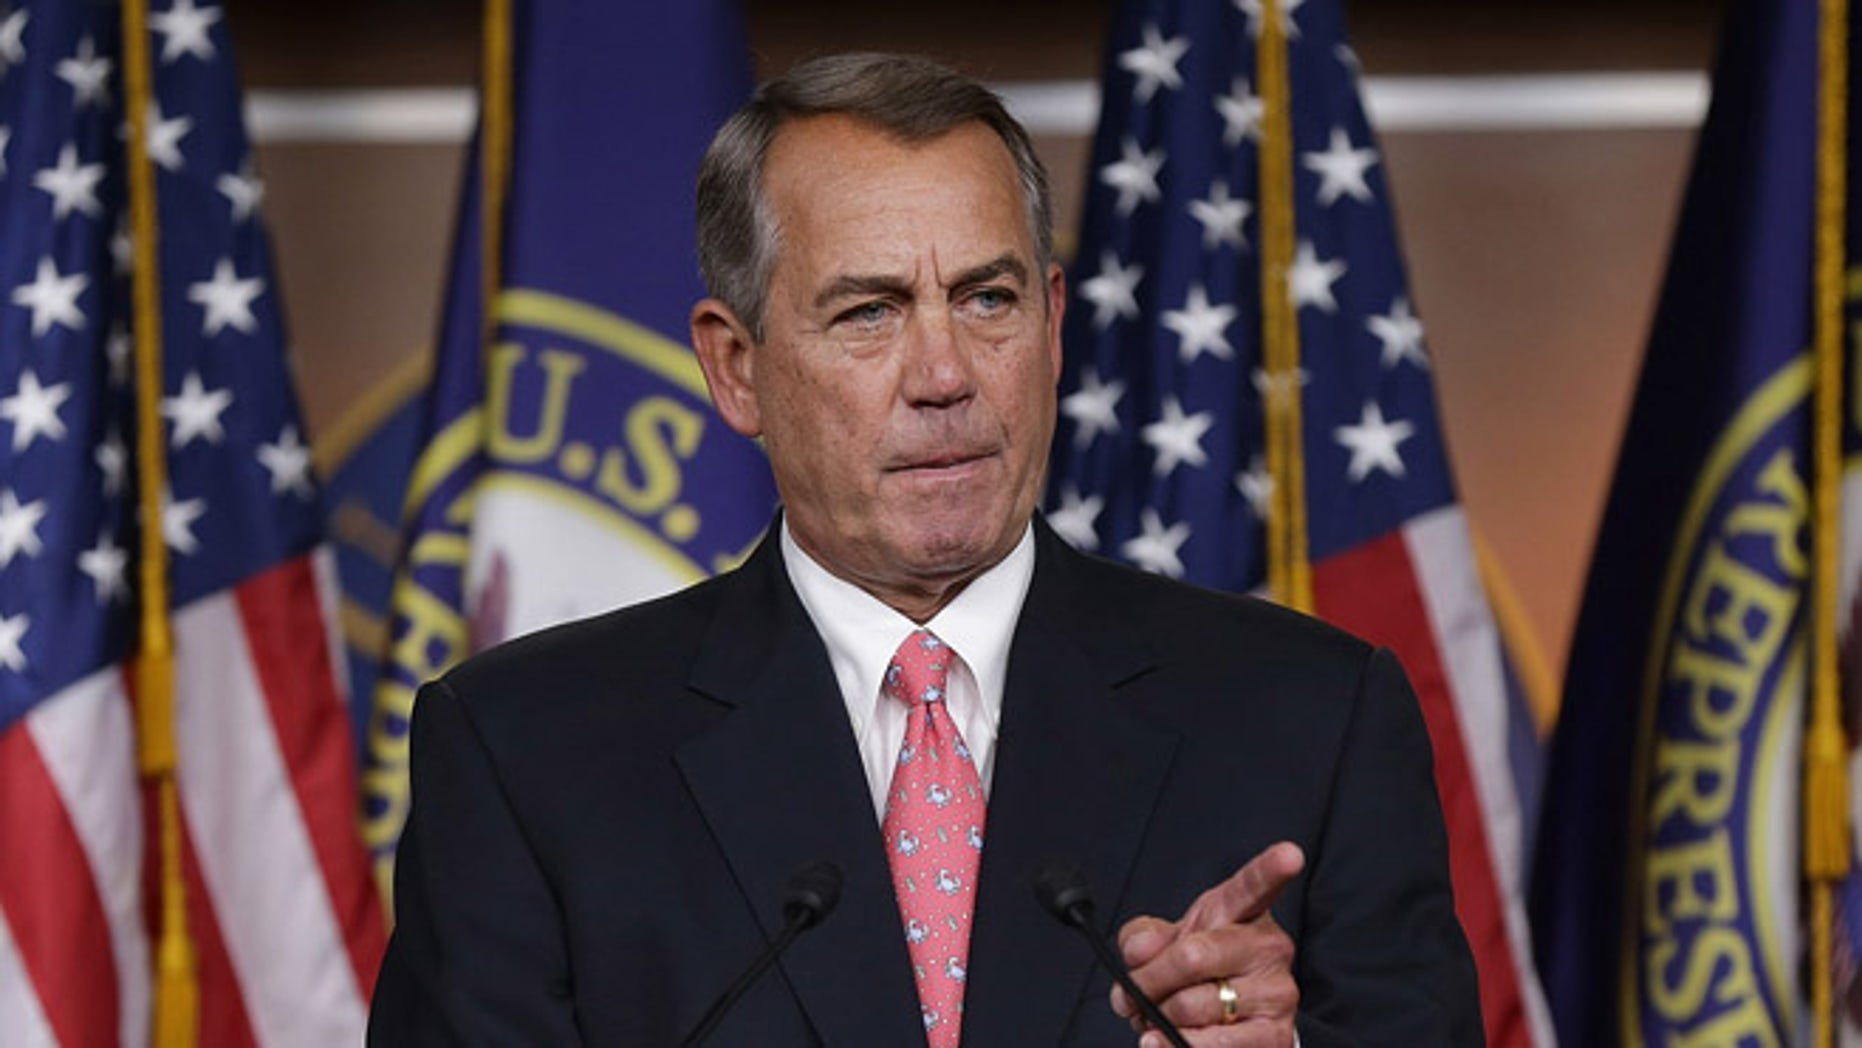 WASHINGTON, DC - MARCH 19:  Speaker of the House John Boehner (R-OH) answers questions during his weekly press conference at the U.S. Capitol on March 19, 2015 in Washington, DC. Boehner answered questions on the Republican budget, Hillary Clinton's emails, and other topics during the press conference.  (Photo by Win McNamee/Getty Images)